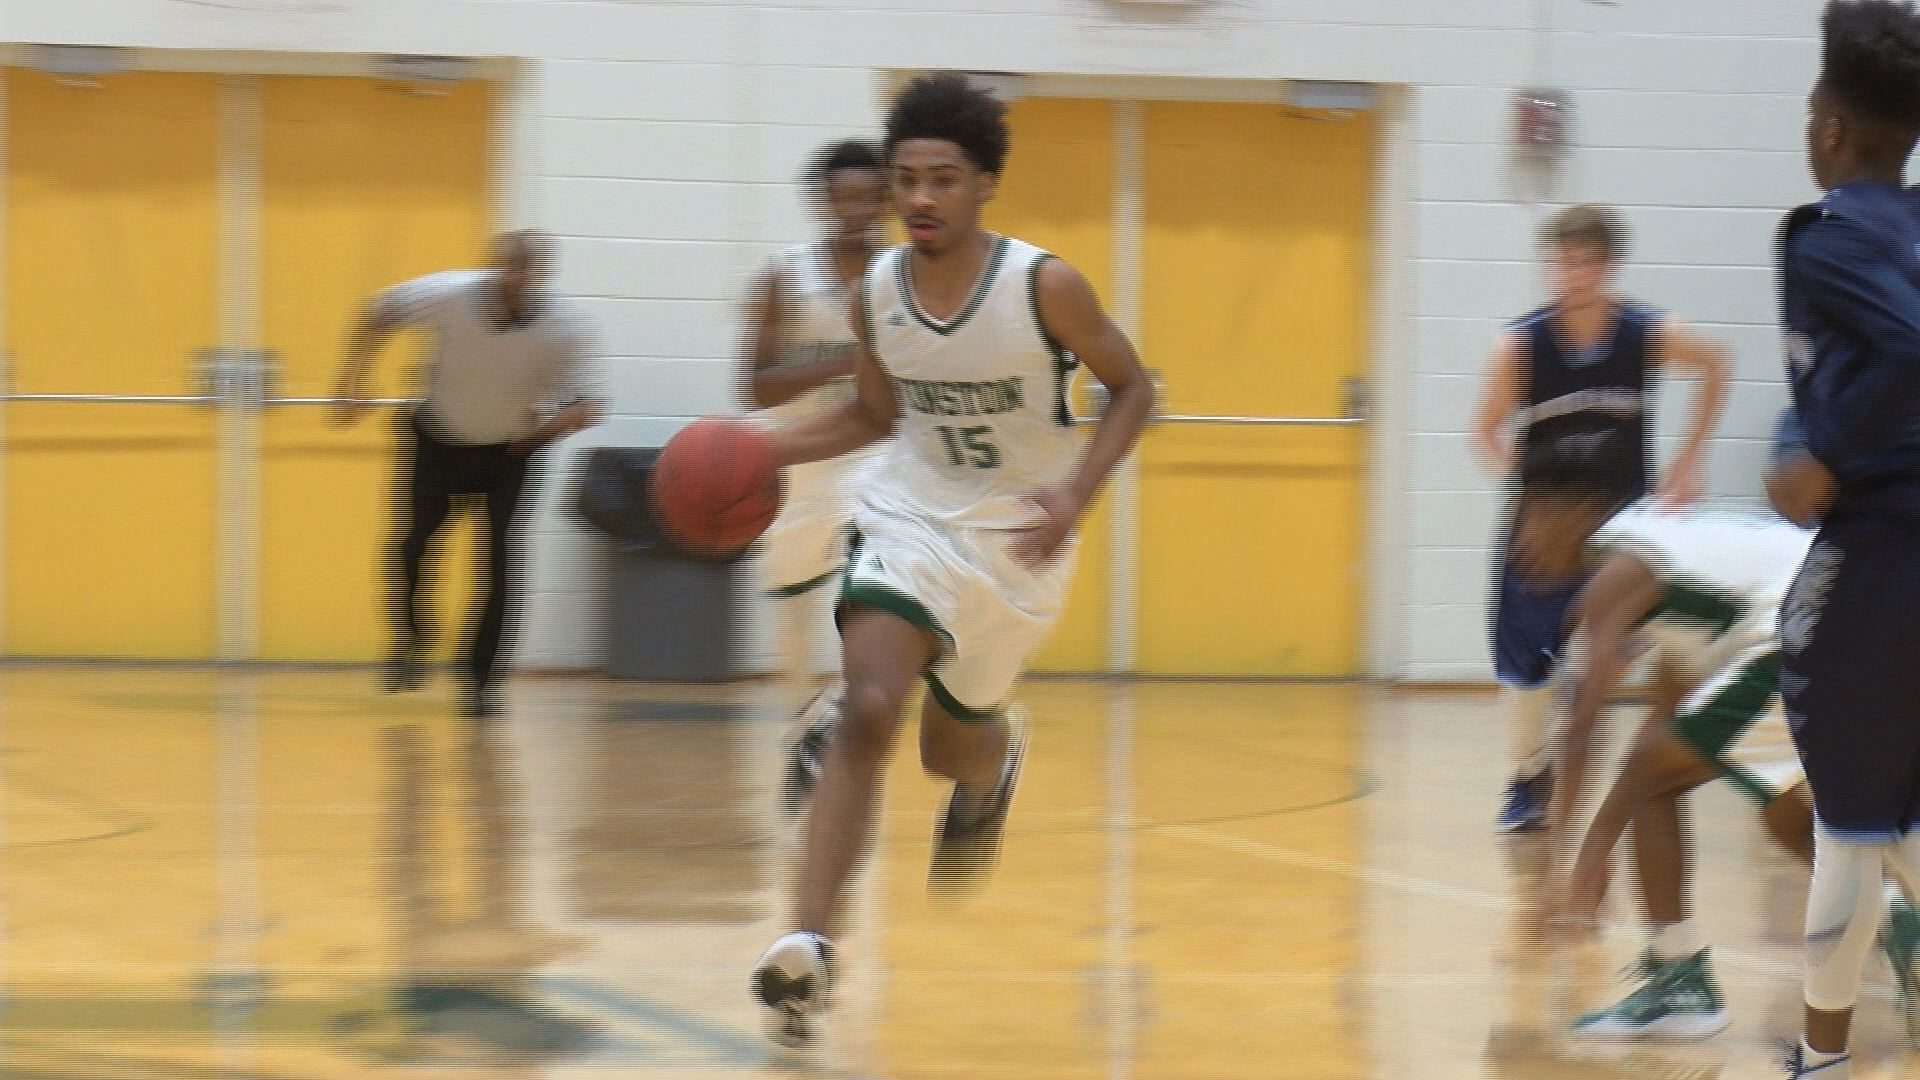 kinston-boys-basketball-0106_326916